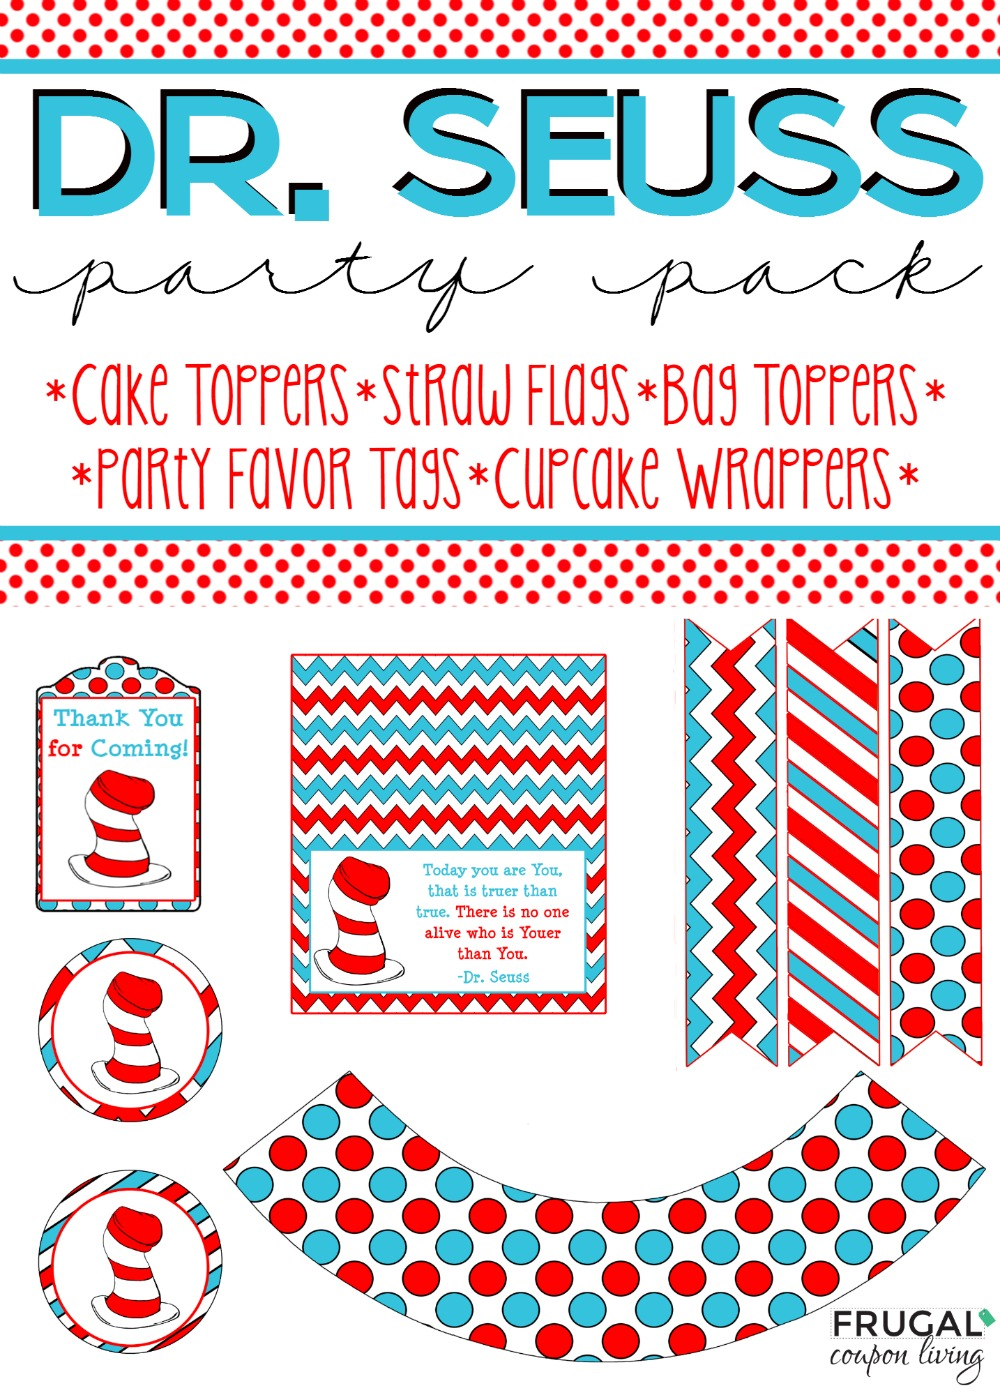 dr-seuss-party-pack-frugal-coupon-living-free